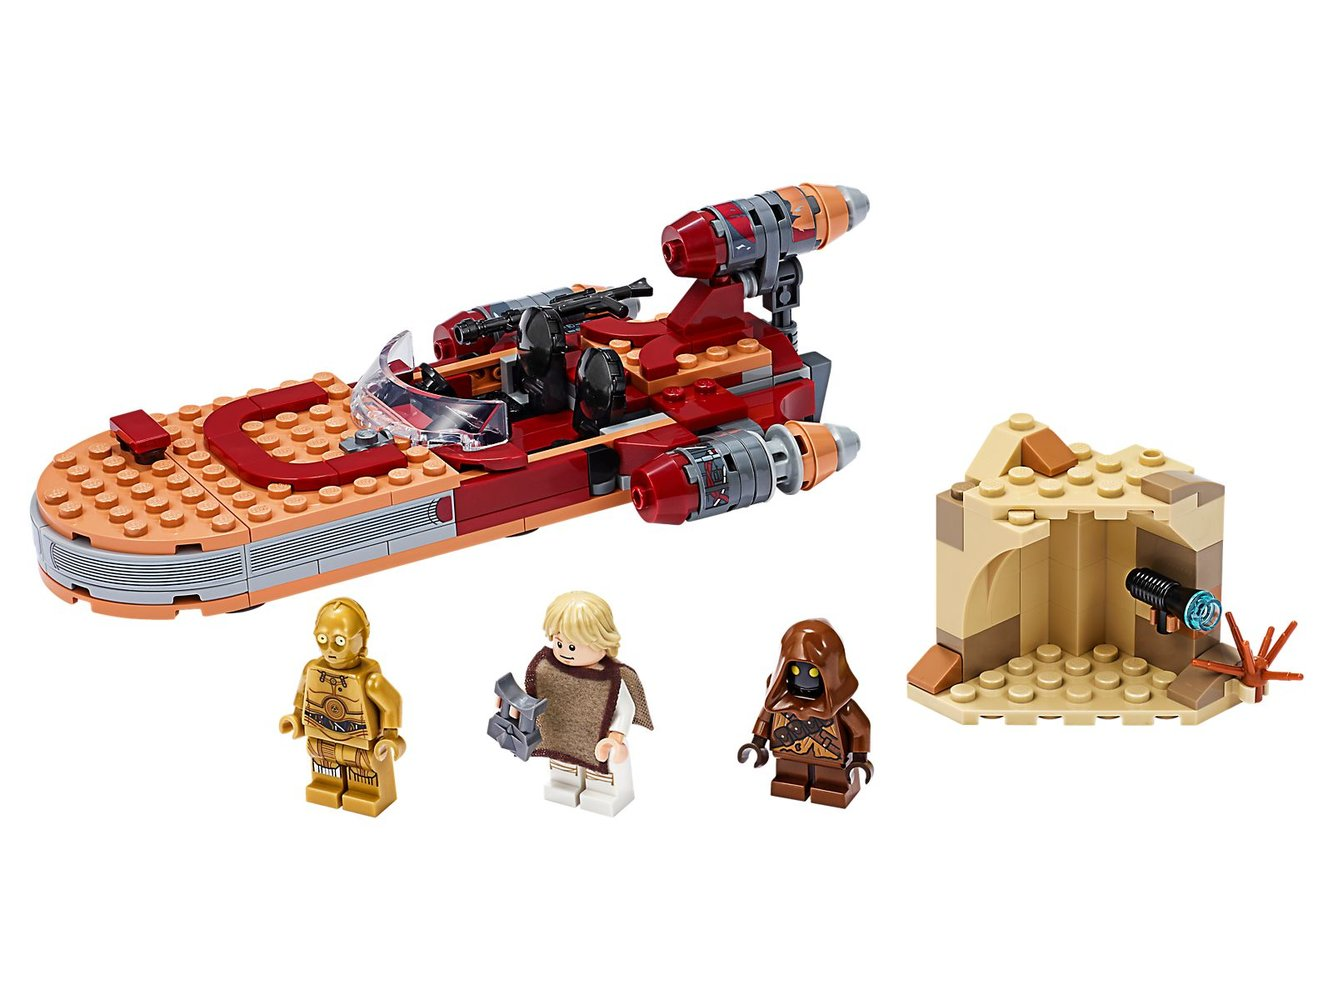 Luke Skywalker's Landspeeder